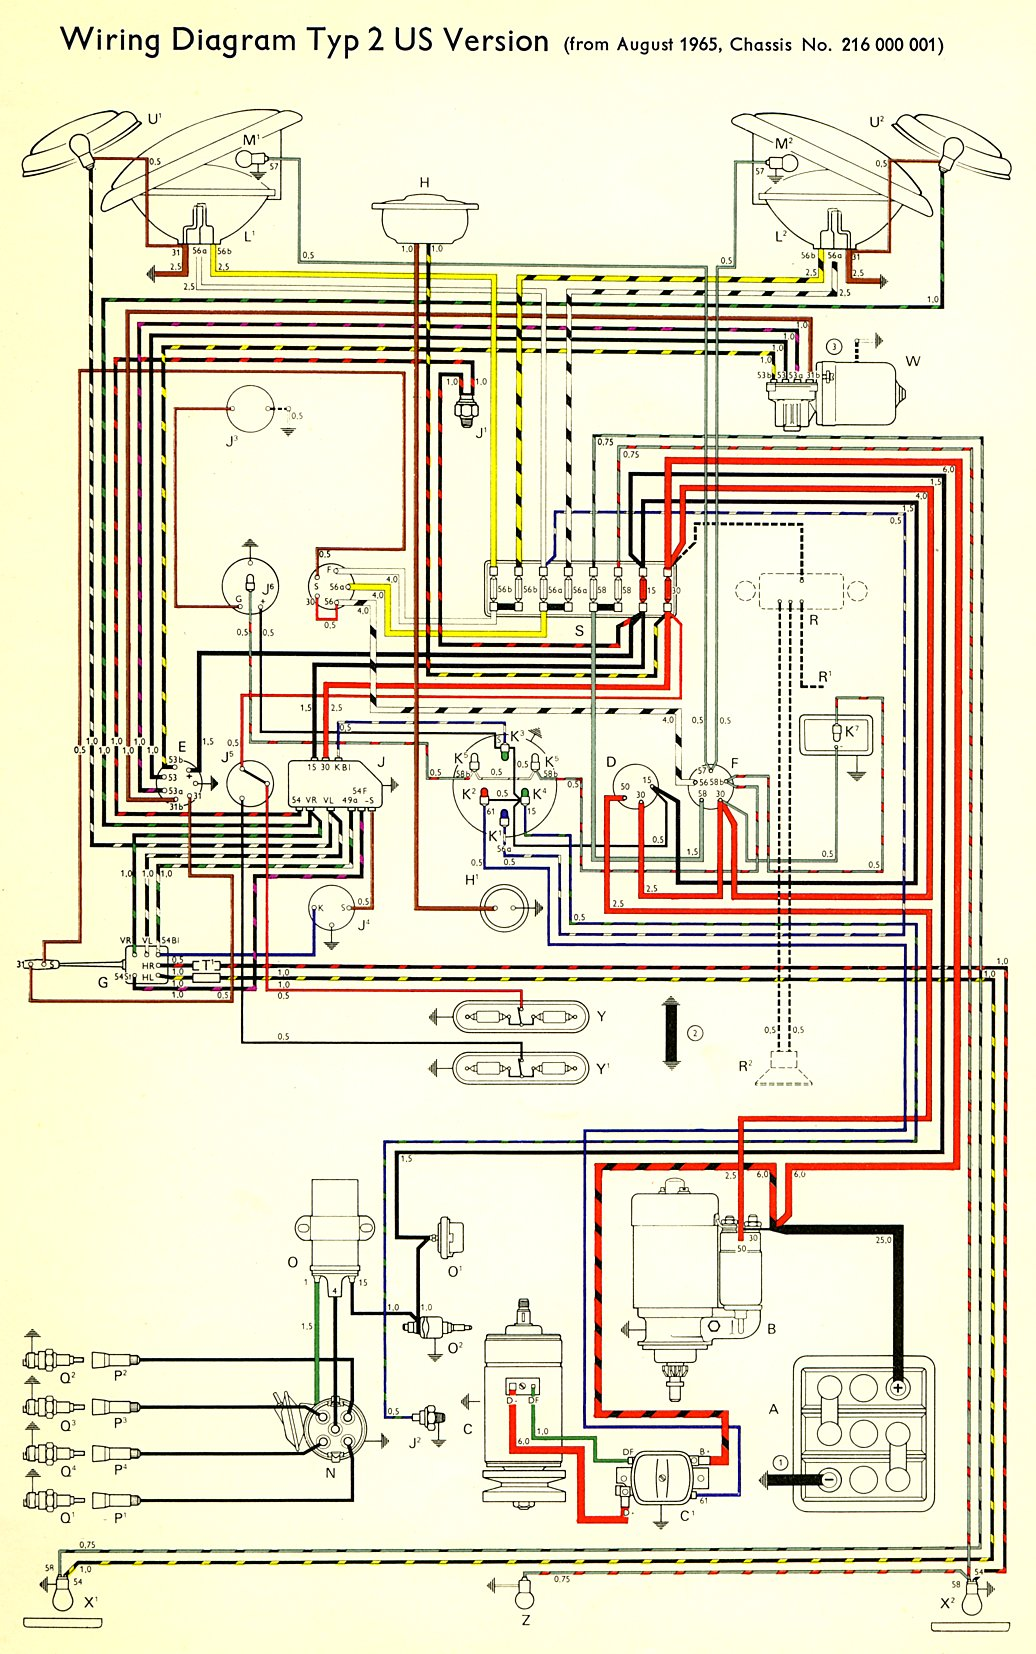 1966 Bus Wiring    diagram     USA    TheGoldenBug